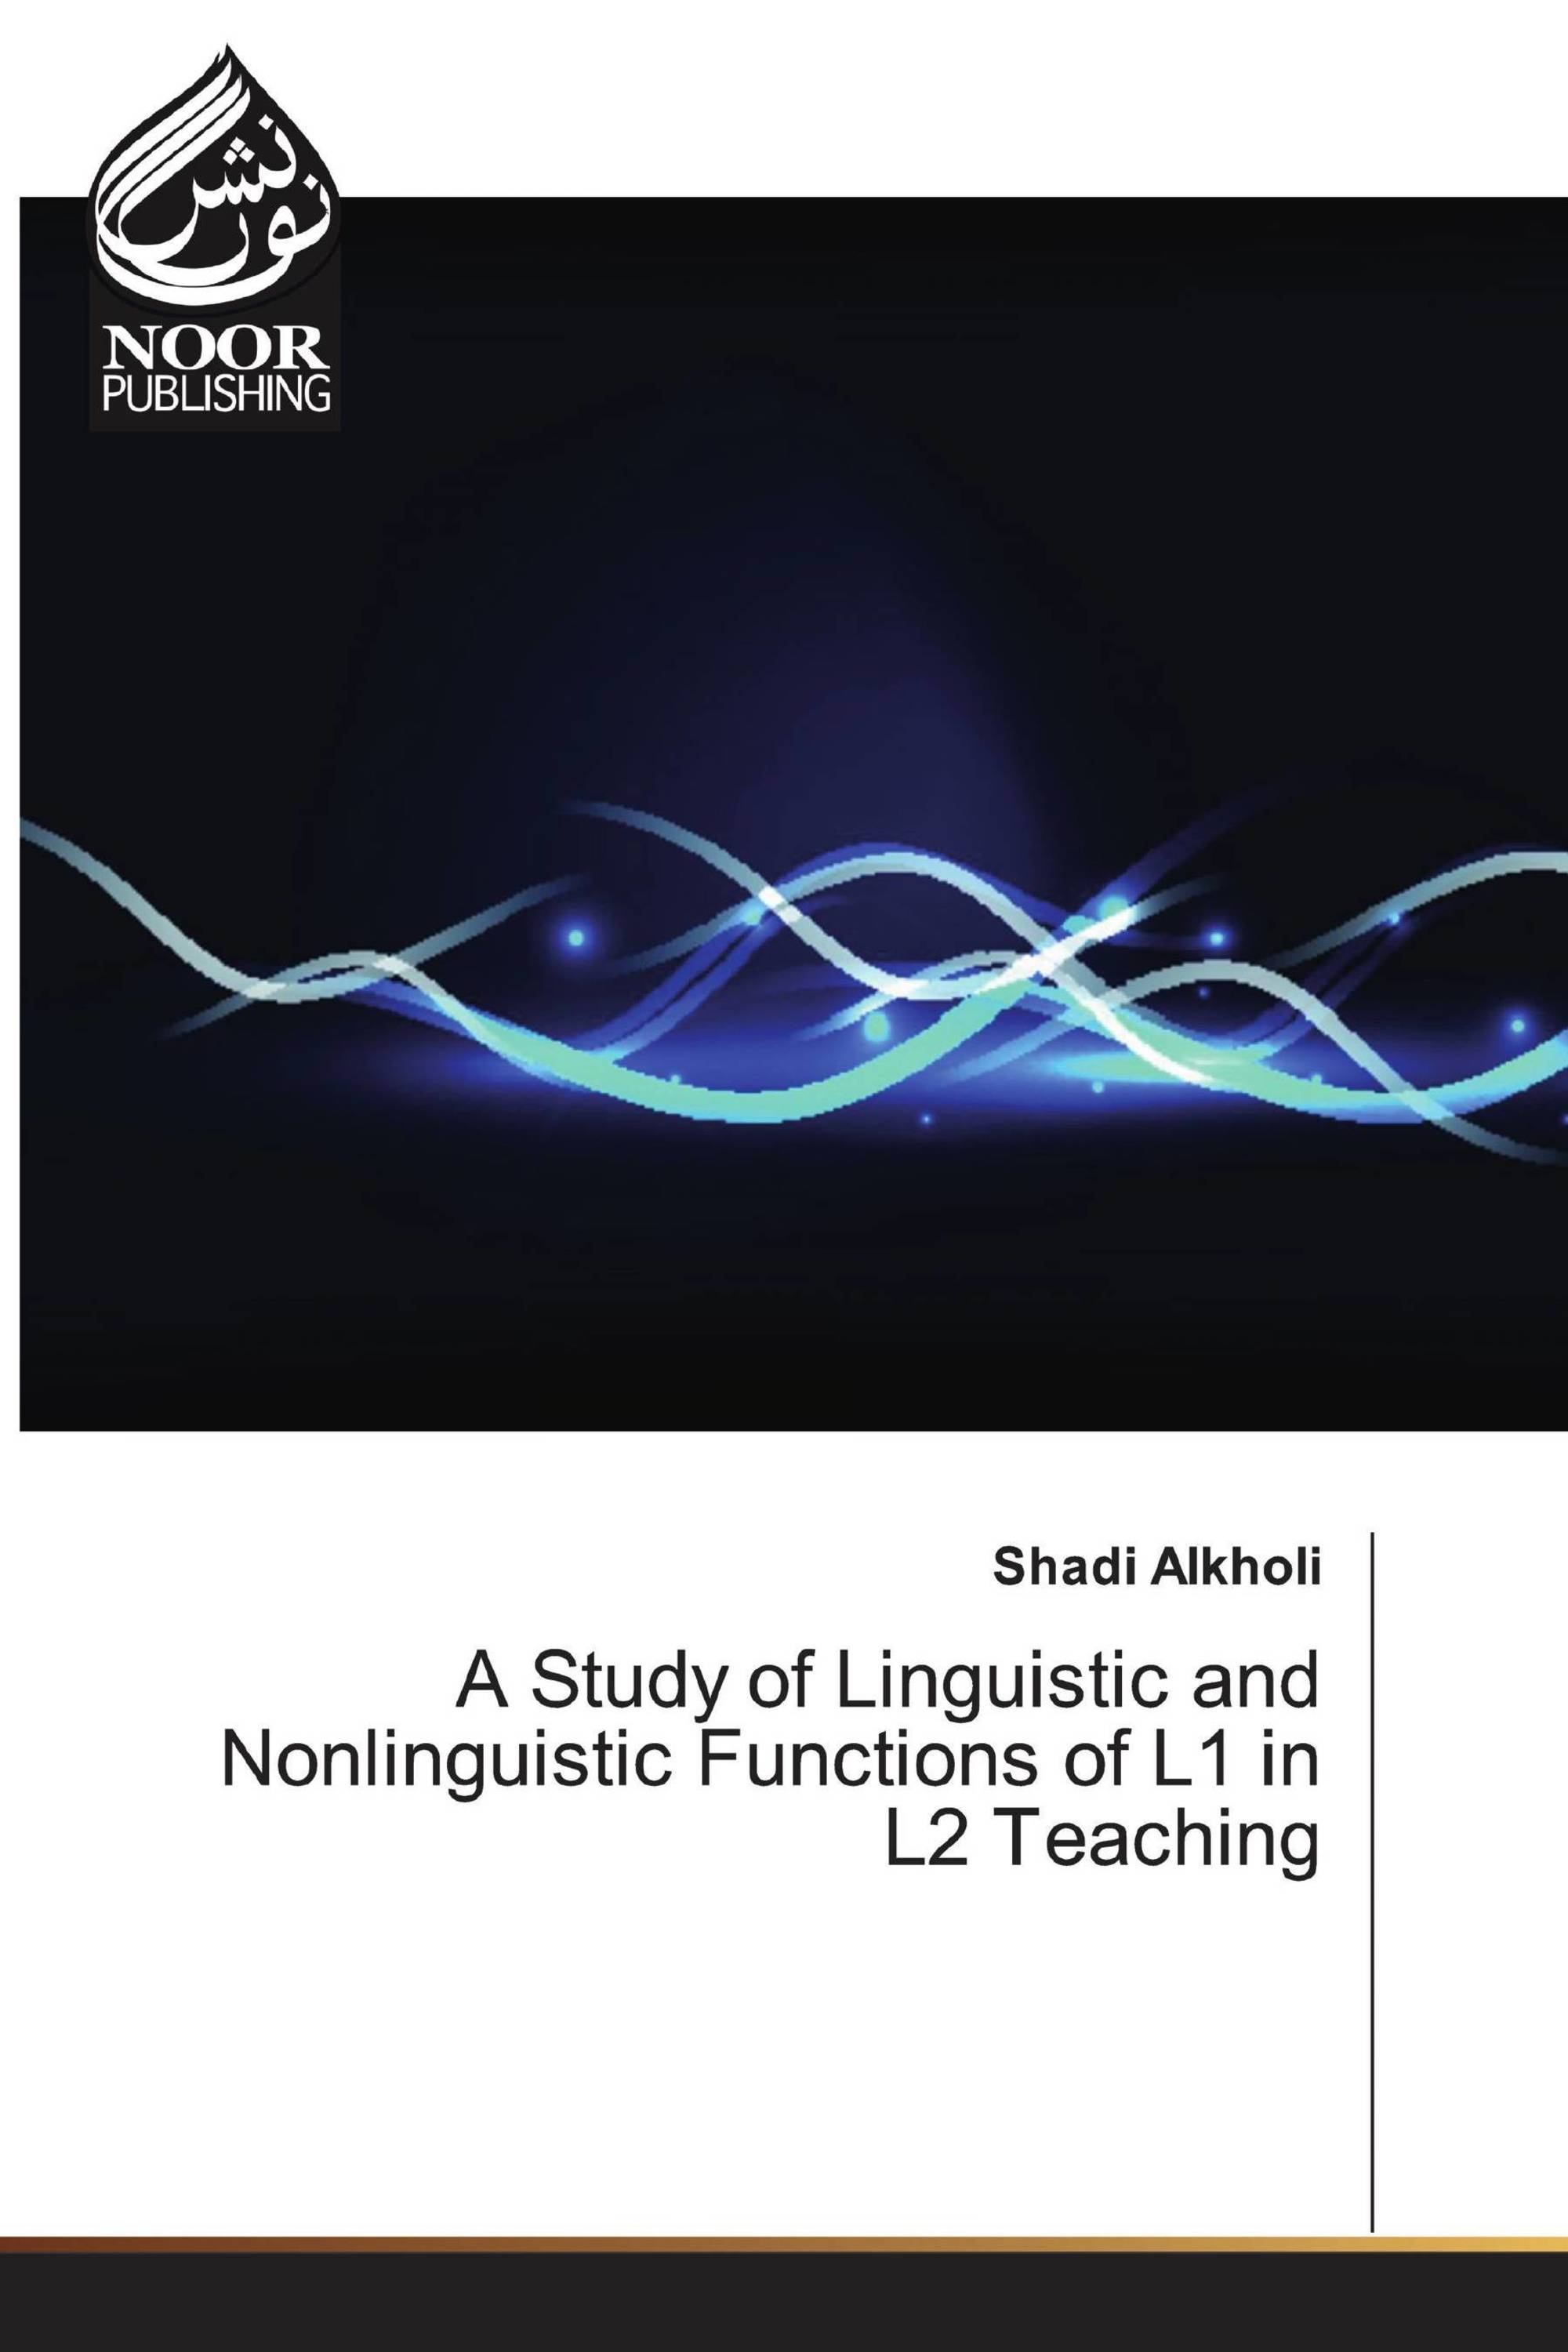 A Study of Linguistic and Nonlinguistic Functions of L1 in L2 Teaching